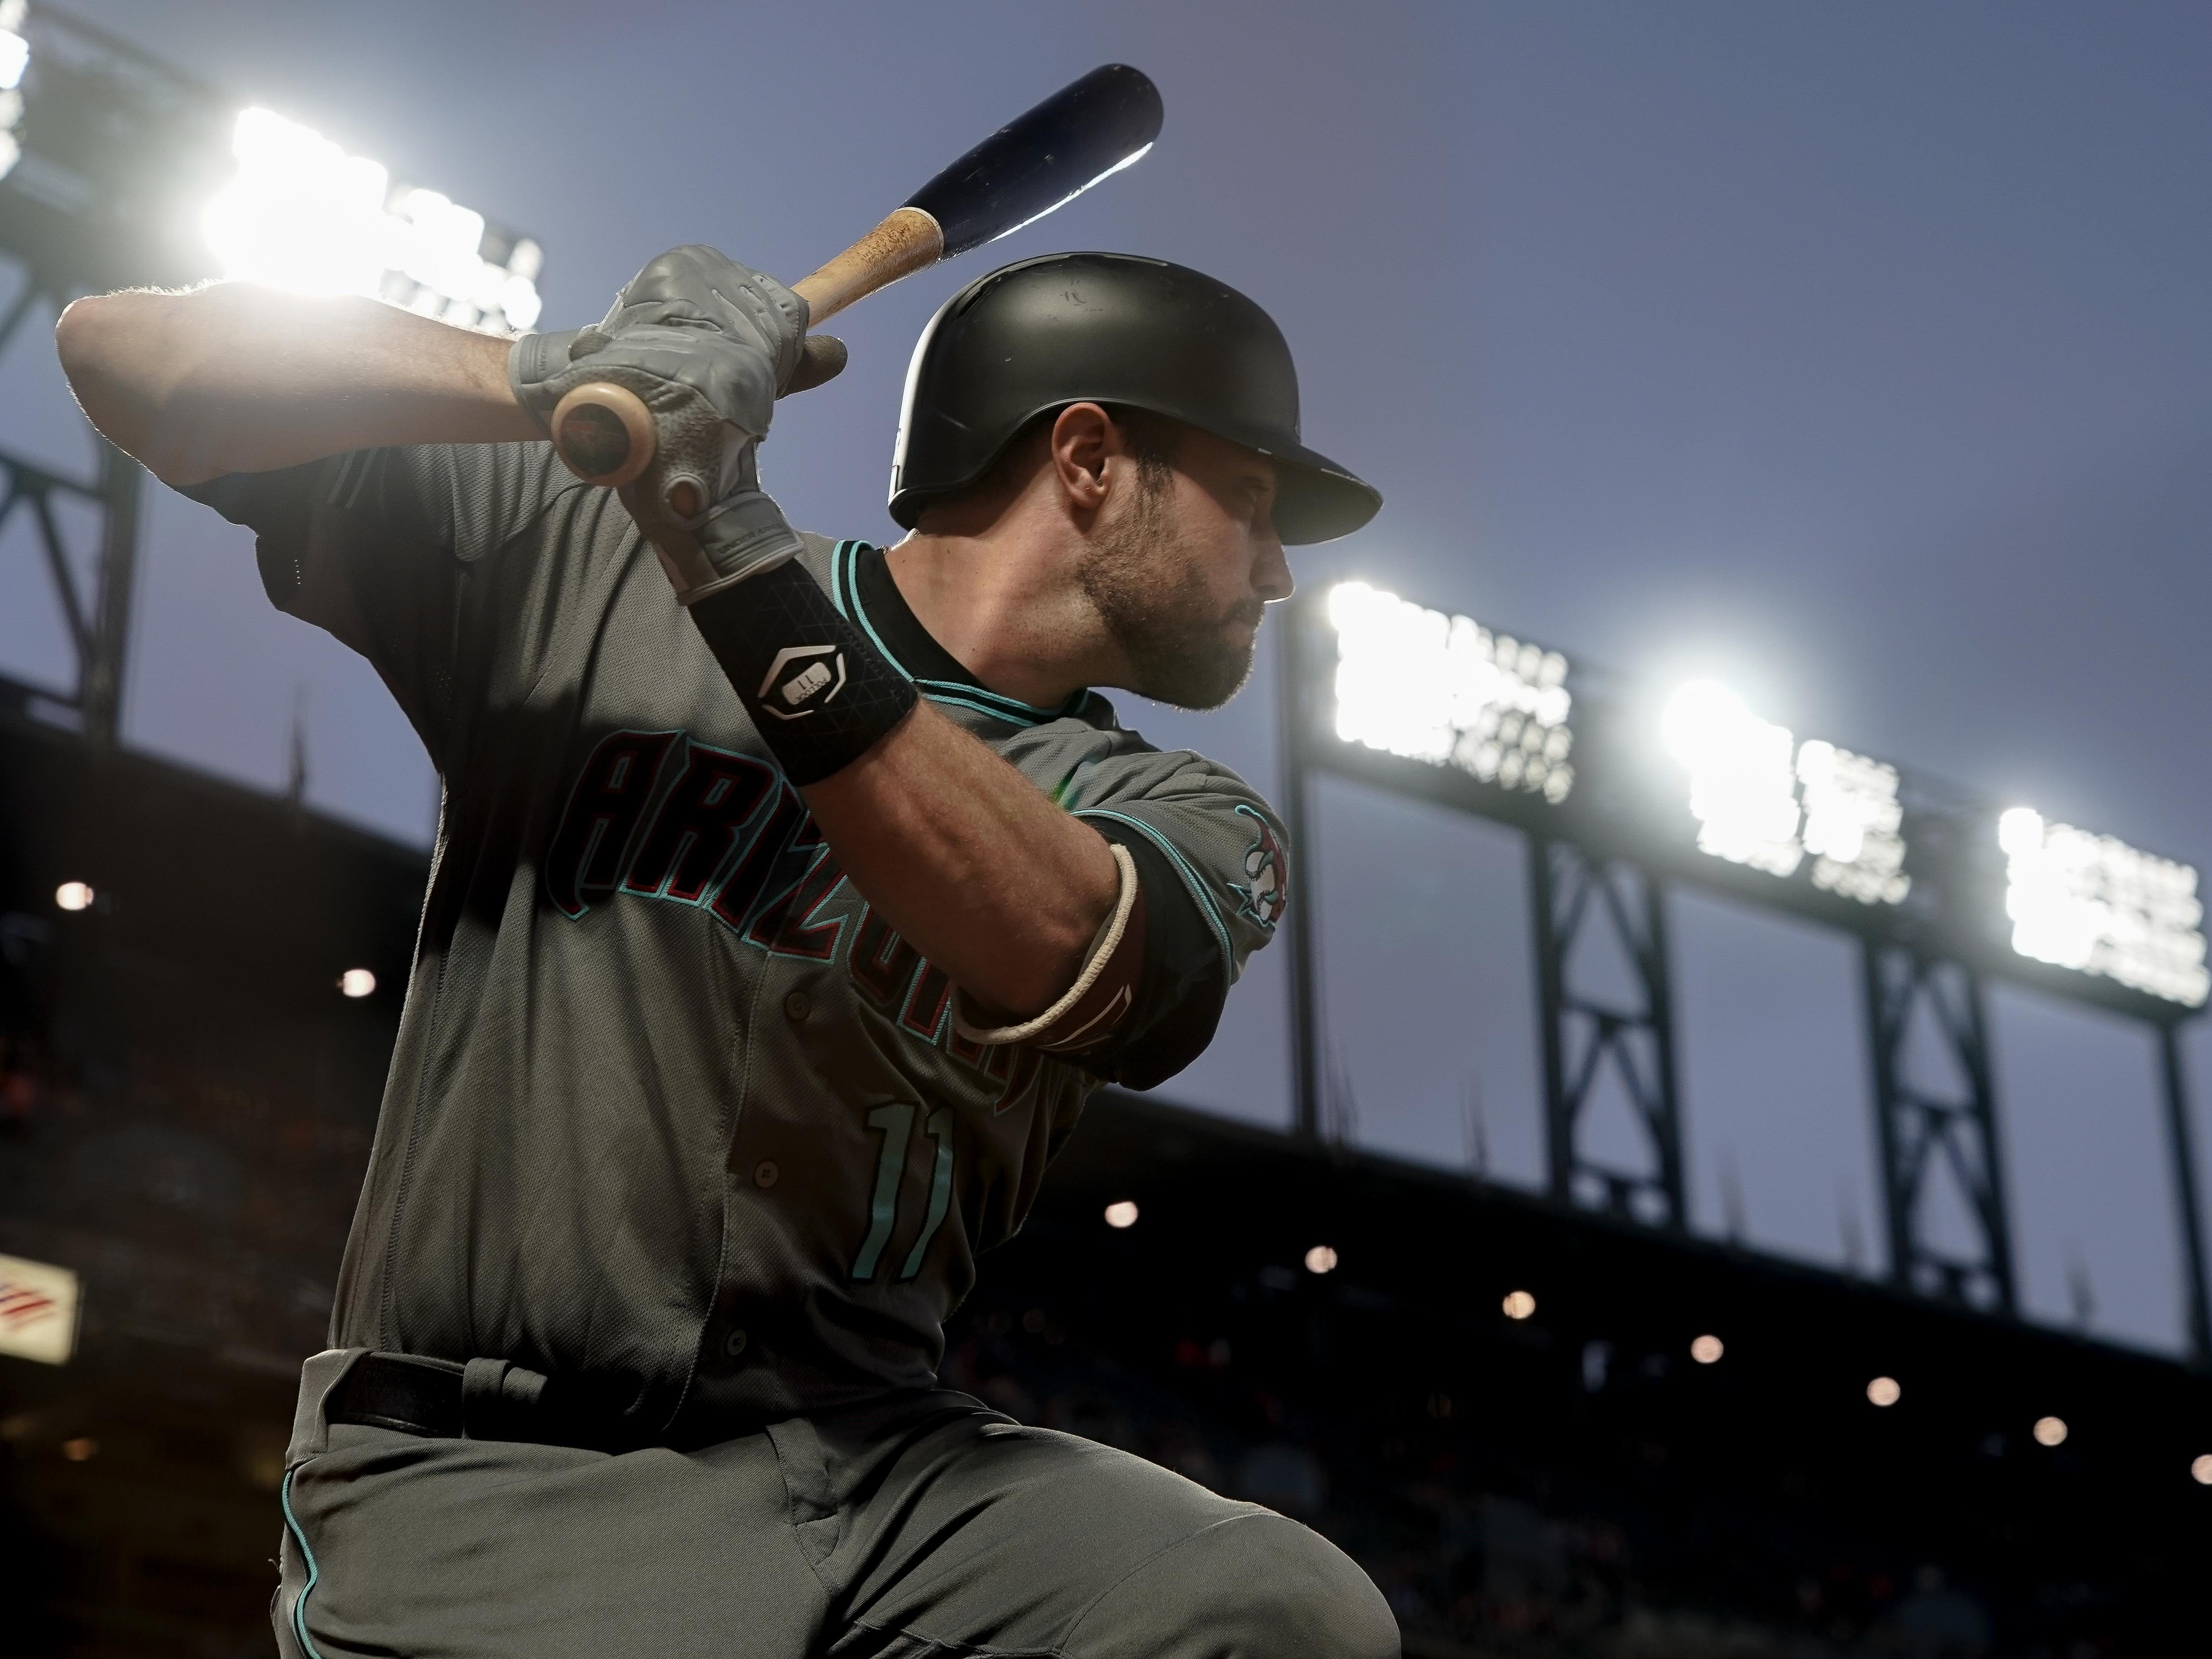 A.J. Pollock (31, OF, Diamondbacks) – signed with Dodgers, 4 years/$60 million